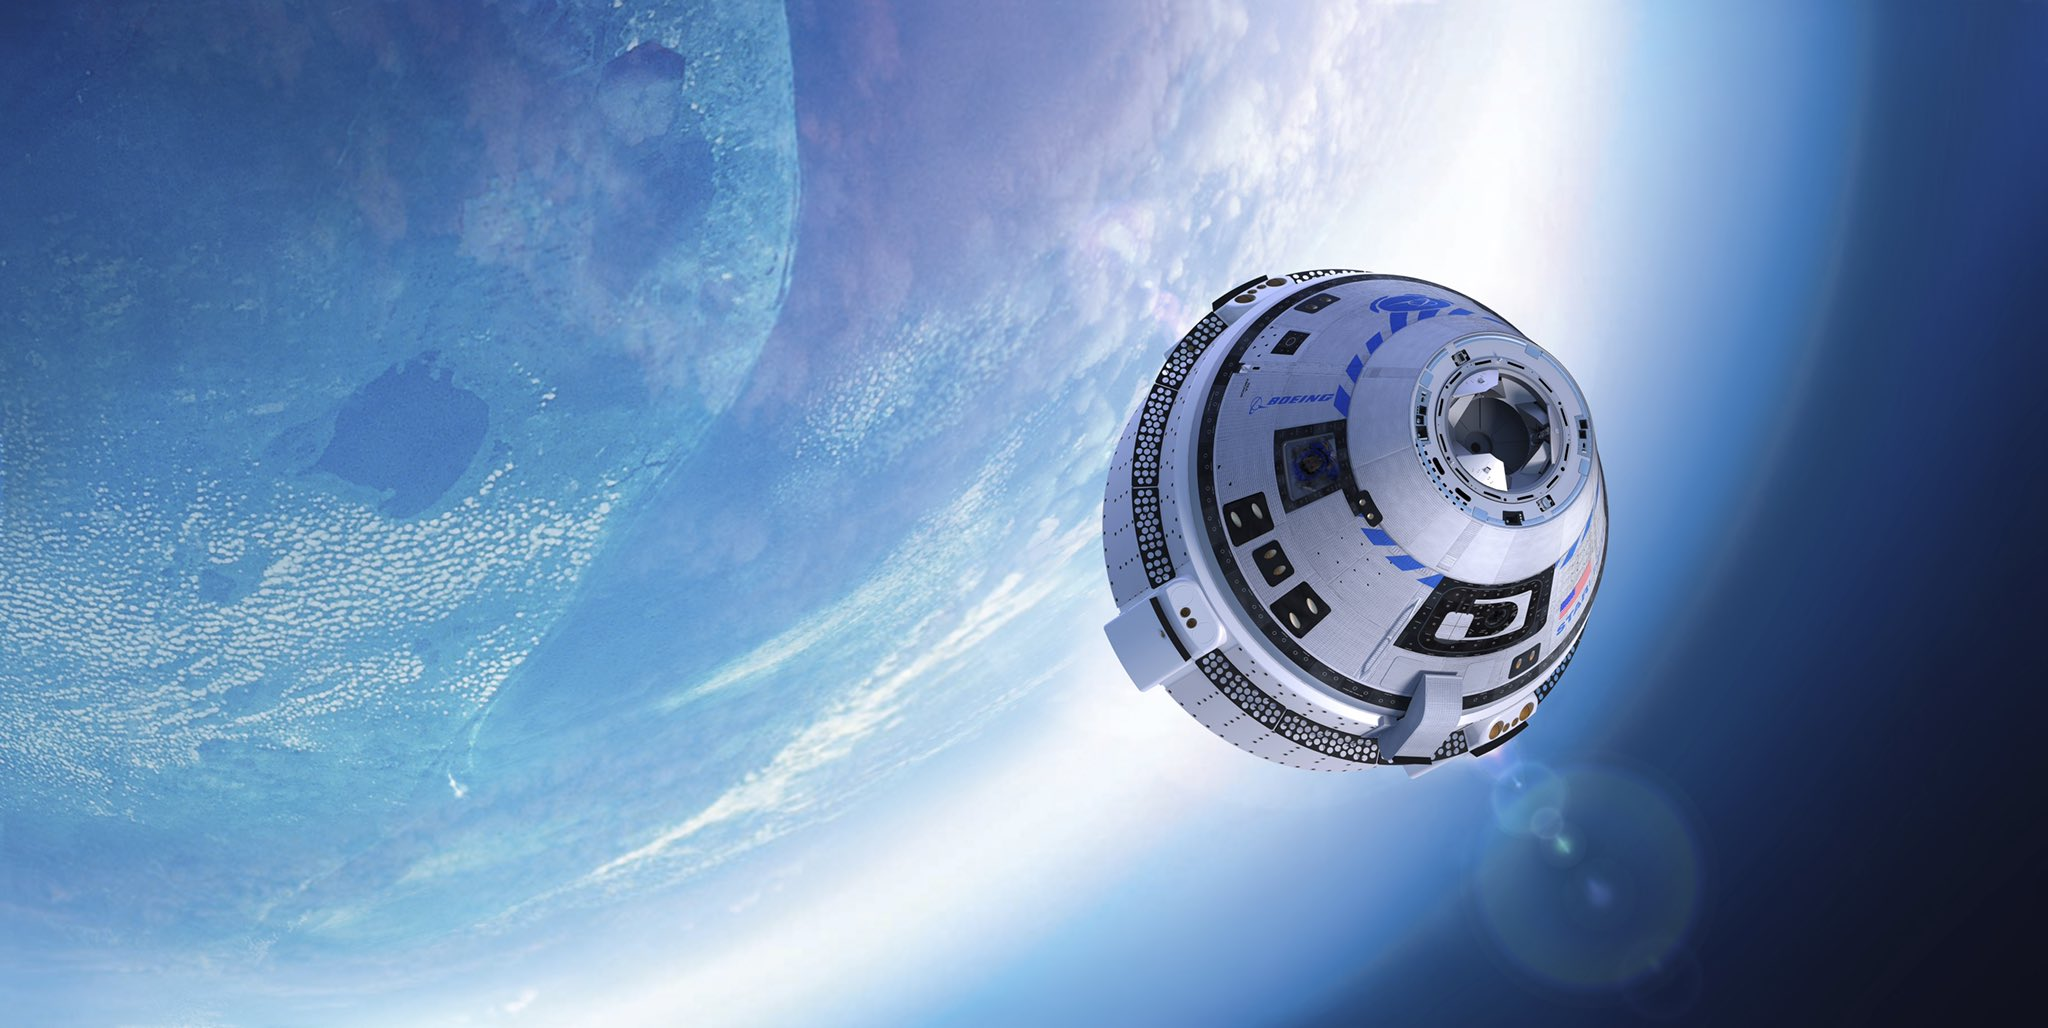 Boeing's CST-100 Starliner spacecraft